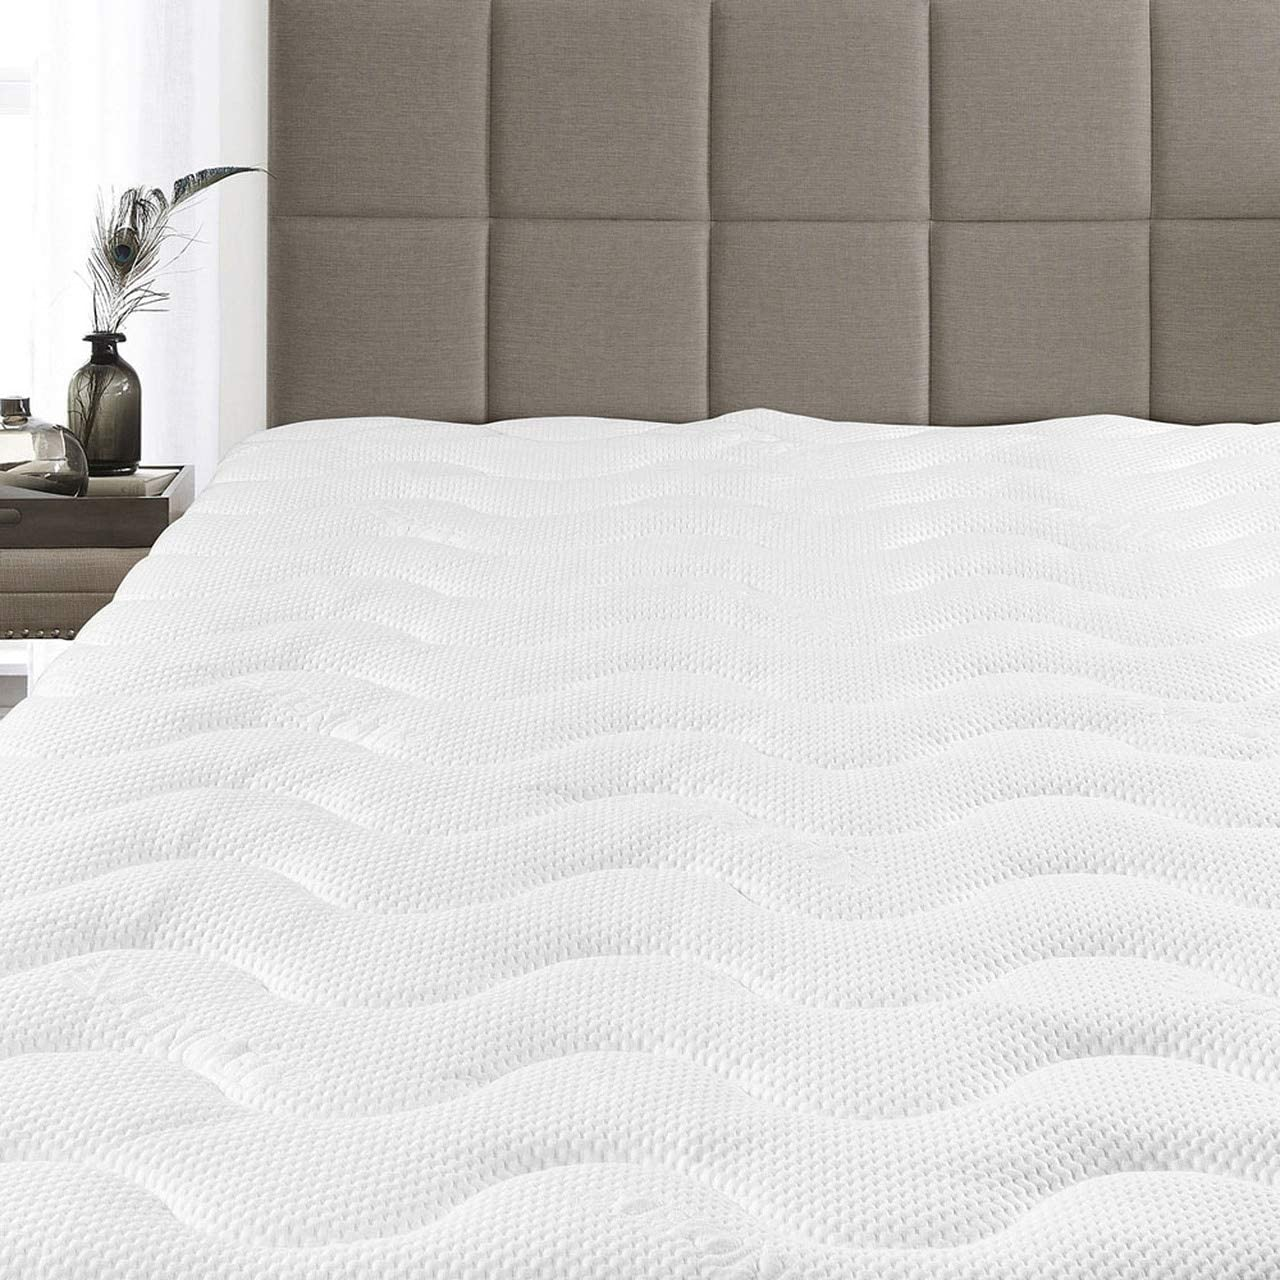 Extra Plush Hypoallergenic Cool TENCEL JACQUARD FITTED MATTRESS PAD Queen size Soft Premium Waterproof Mattress Topper